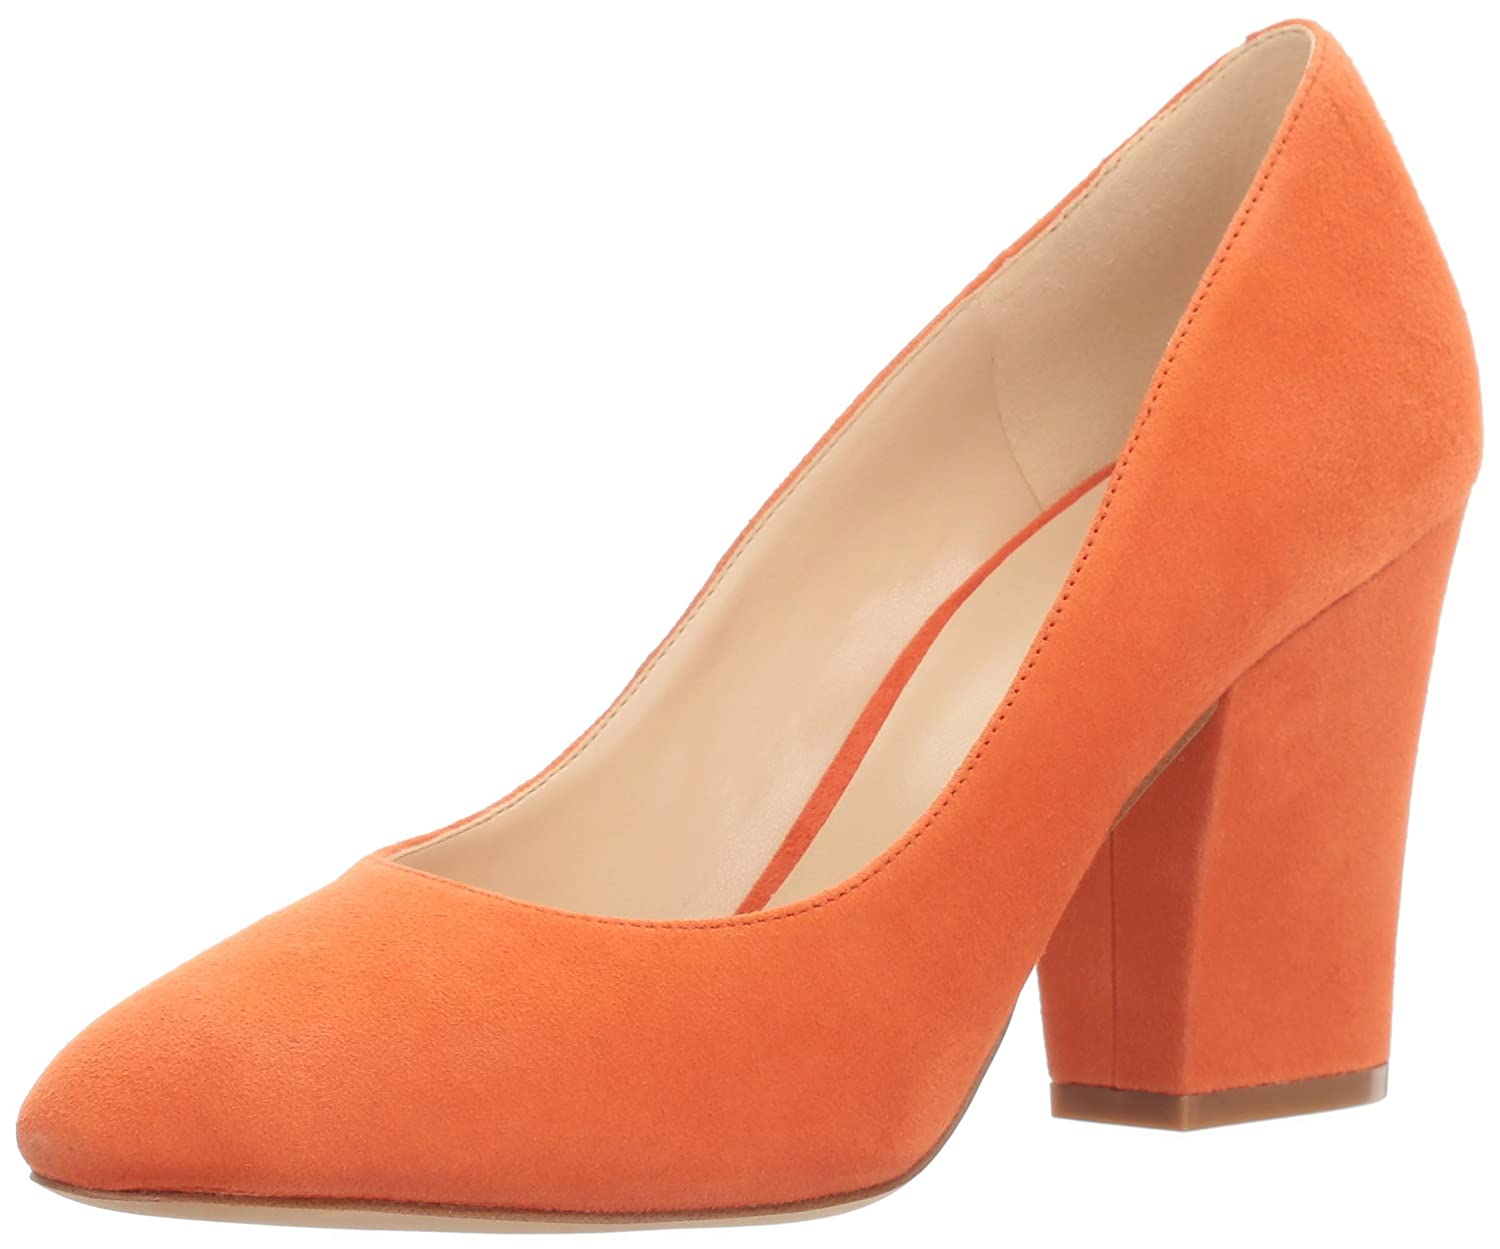 Nine West Pump Women's Scheila Suede Dress Pump West B01ND1AK8F 5.5 B(M) US|Orange cf1ed3